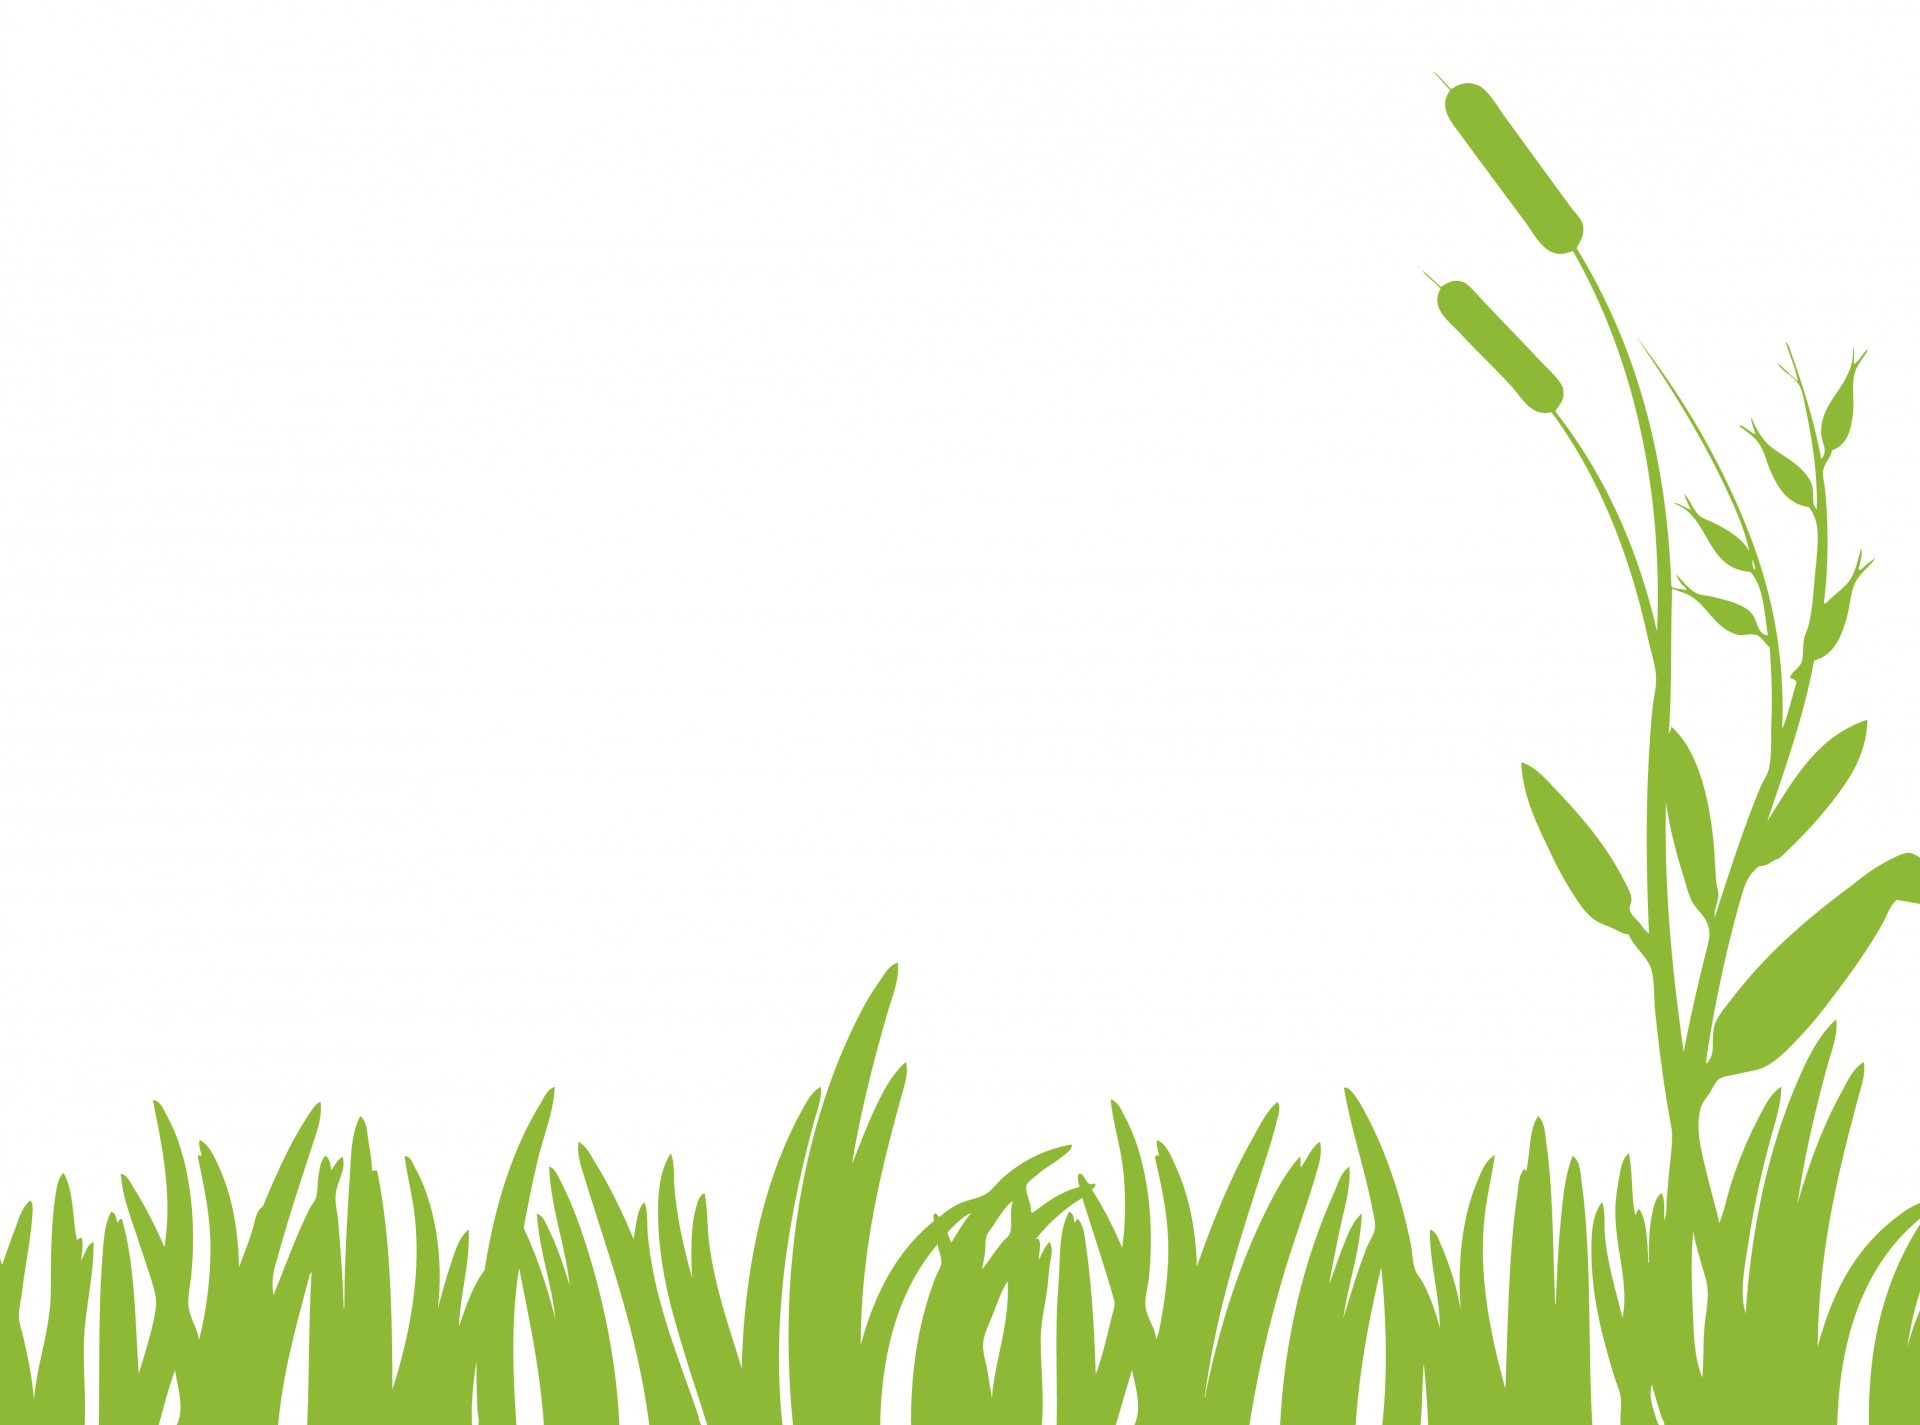 Grass lawn clipart free images